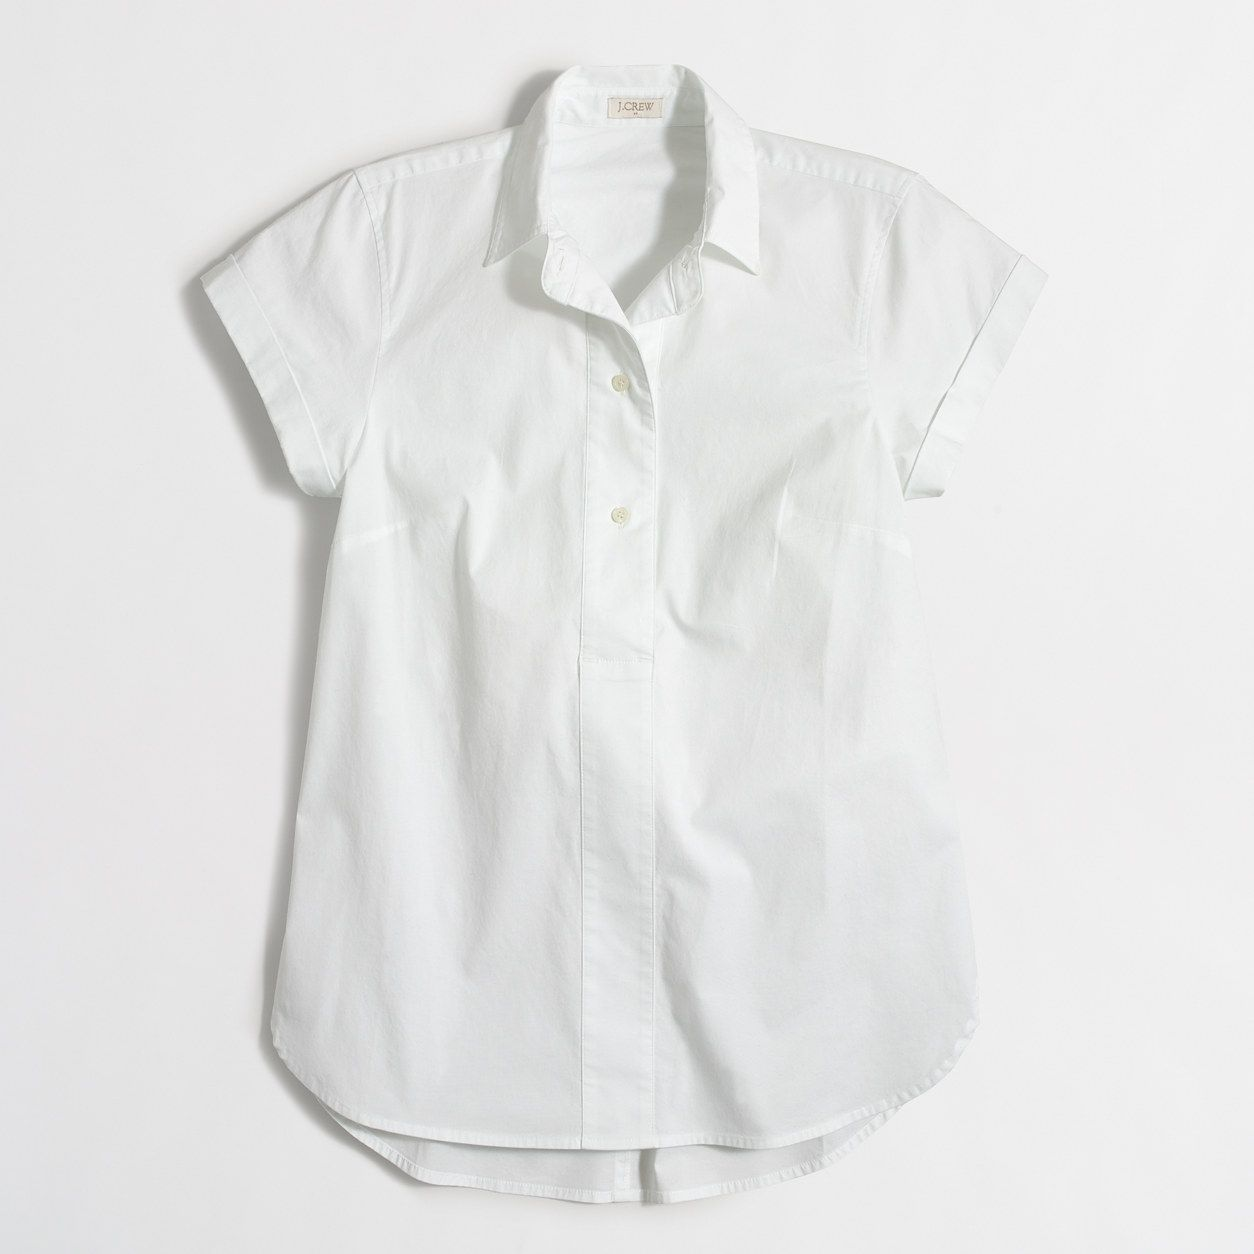 b0e18d30 J.Crew Factory: Short-sleeve popover shirt | Stuff I want to make ...